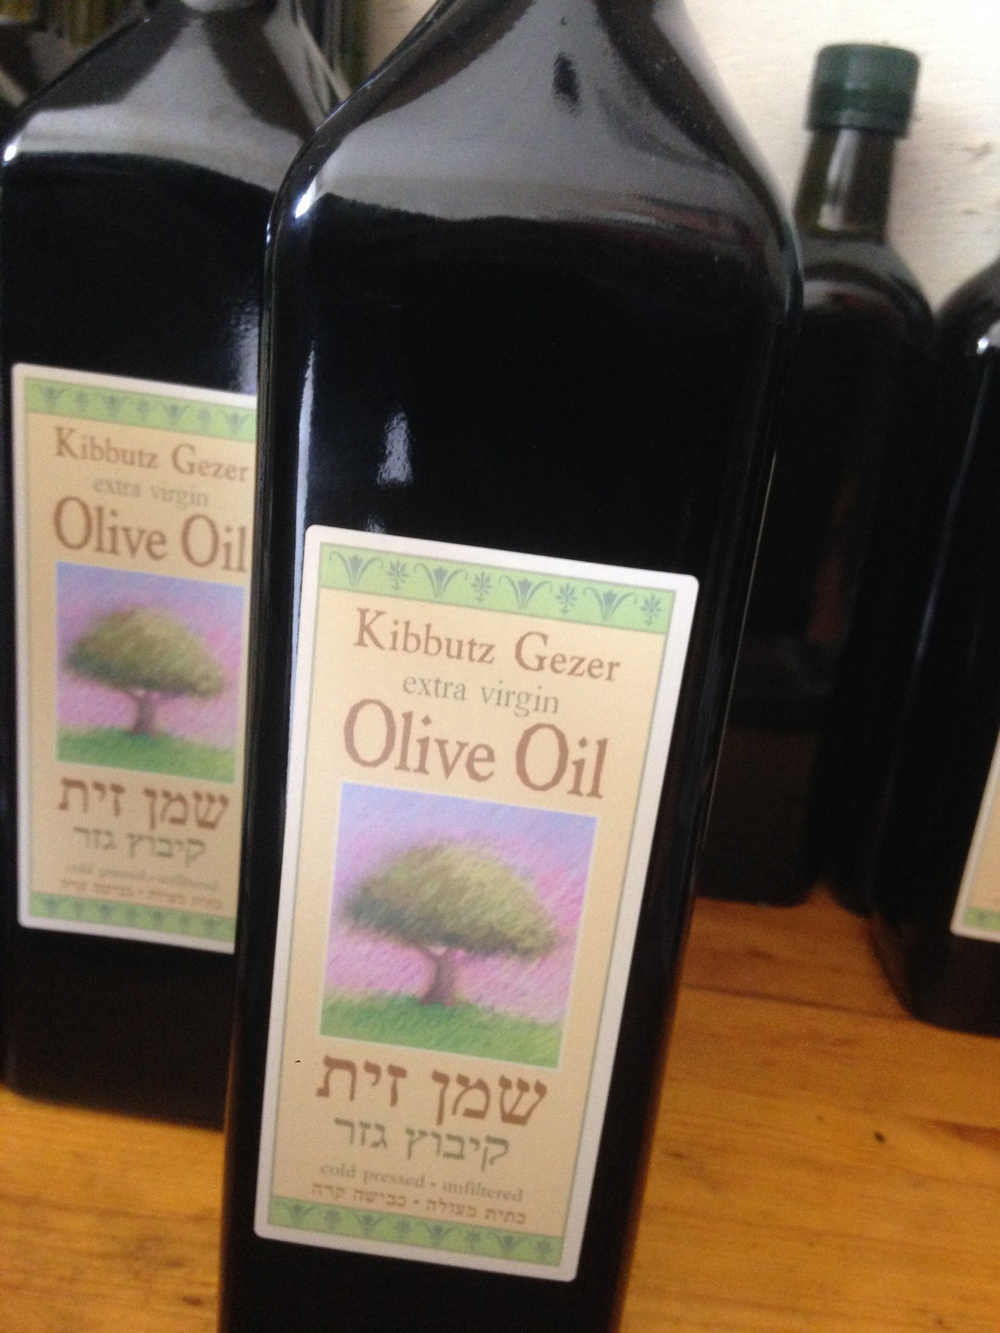 Gezer olive oil ready for cooking and eating.